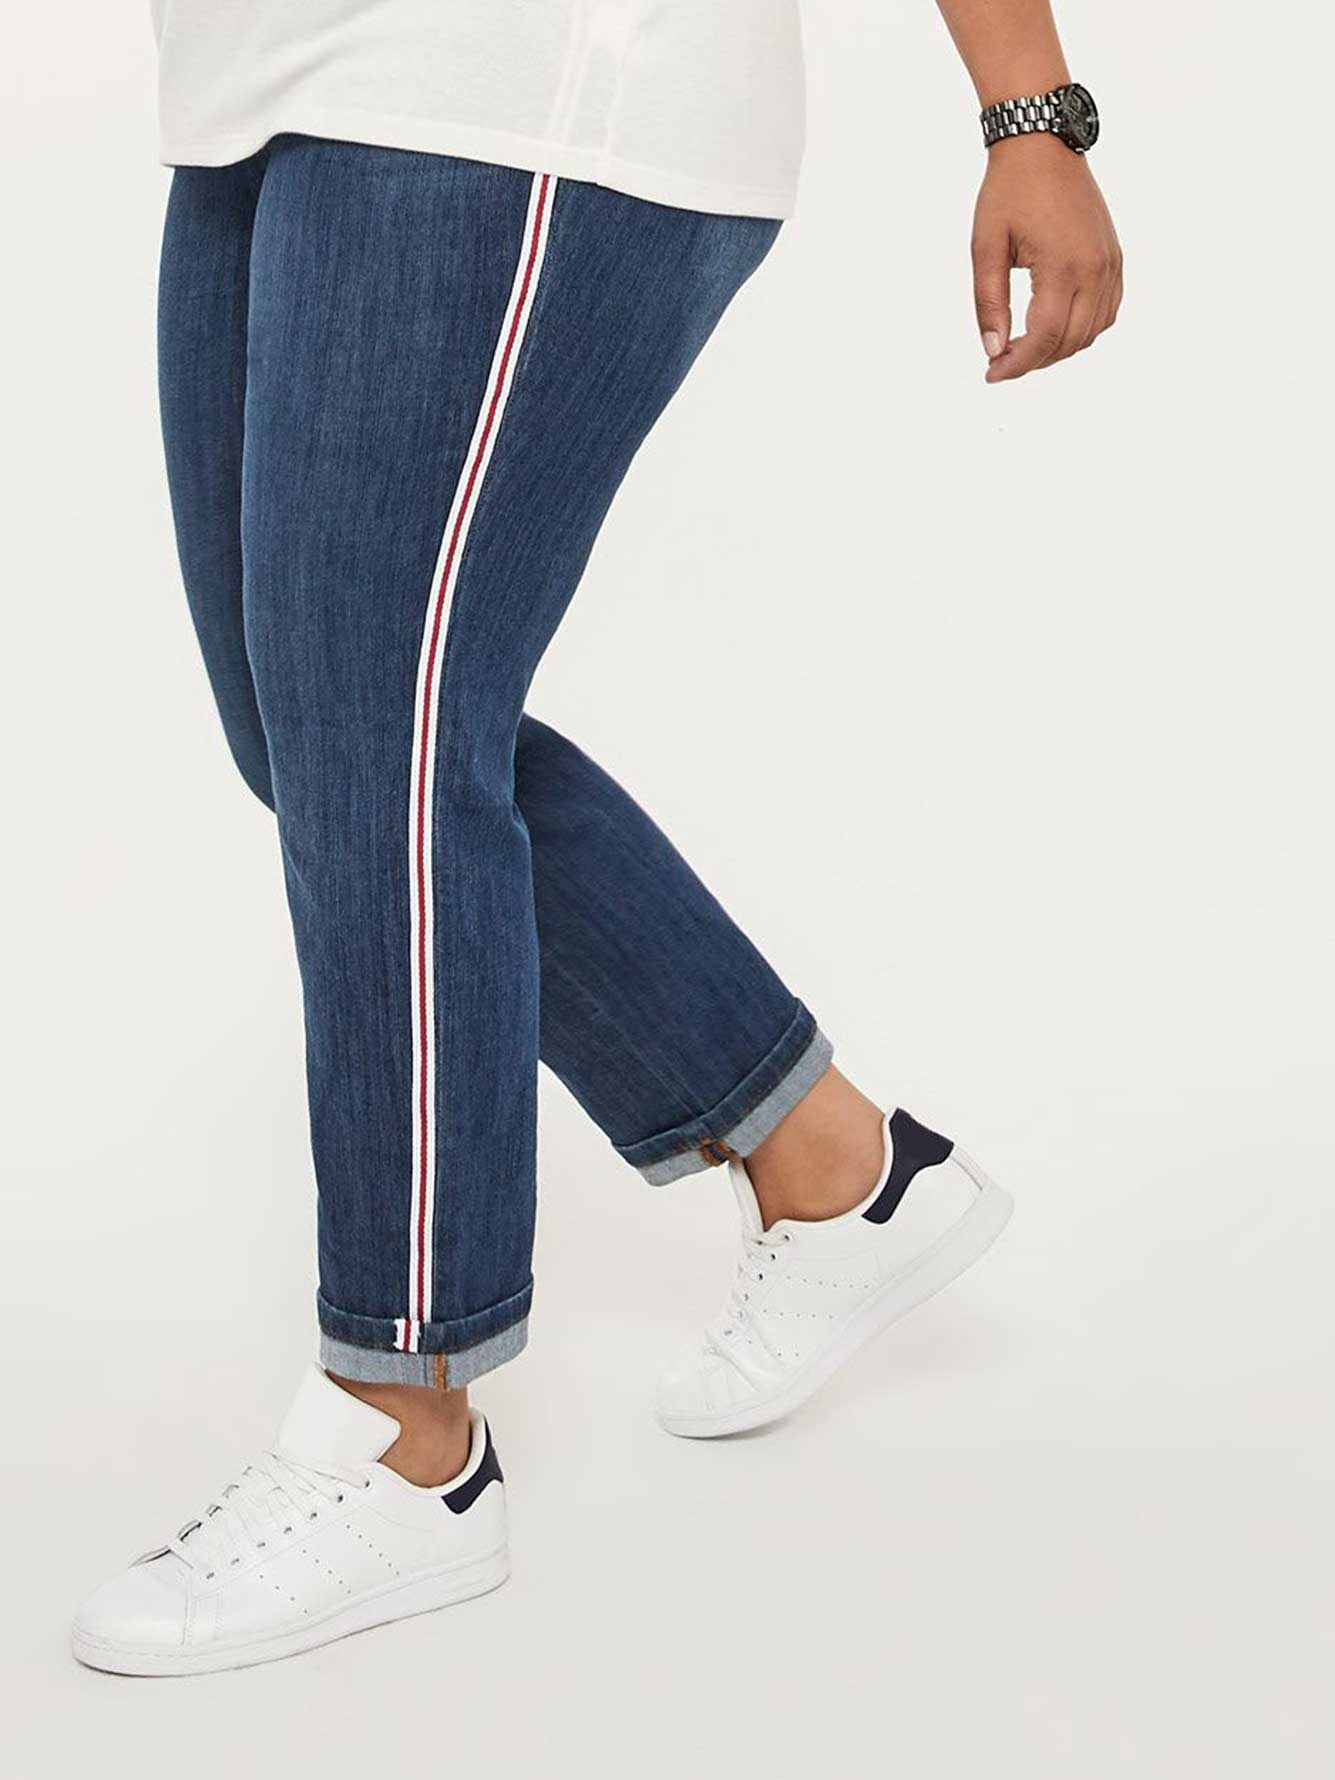 a69ab189a0d88b ONLINE ONLY - Tall Slightly Curvy Straight Leg Boyfriend Jean with Side  Stripe - d